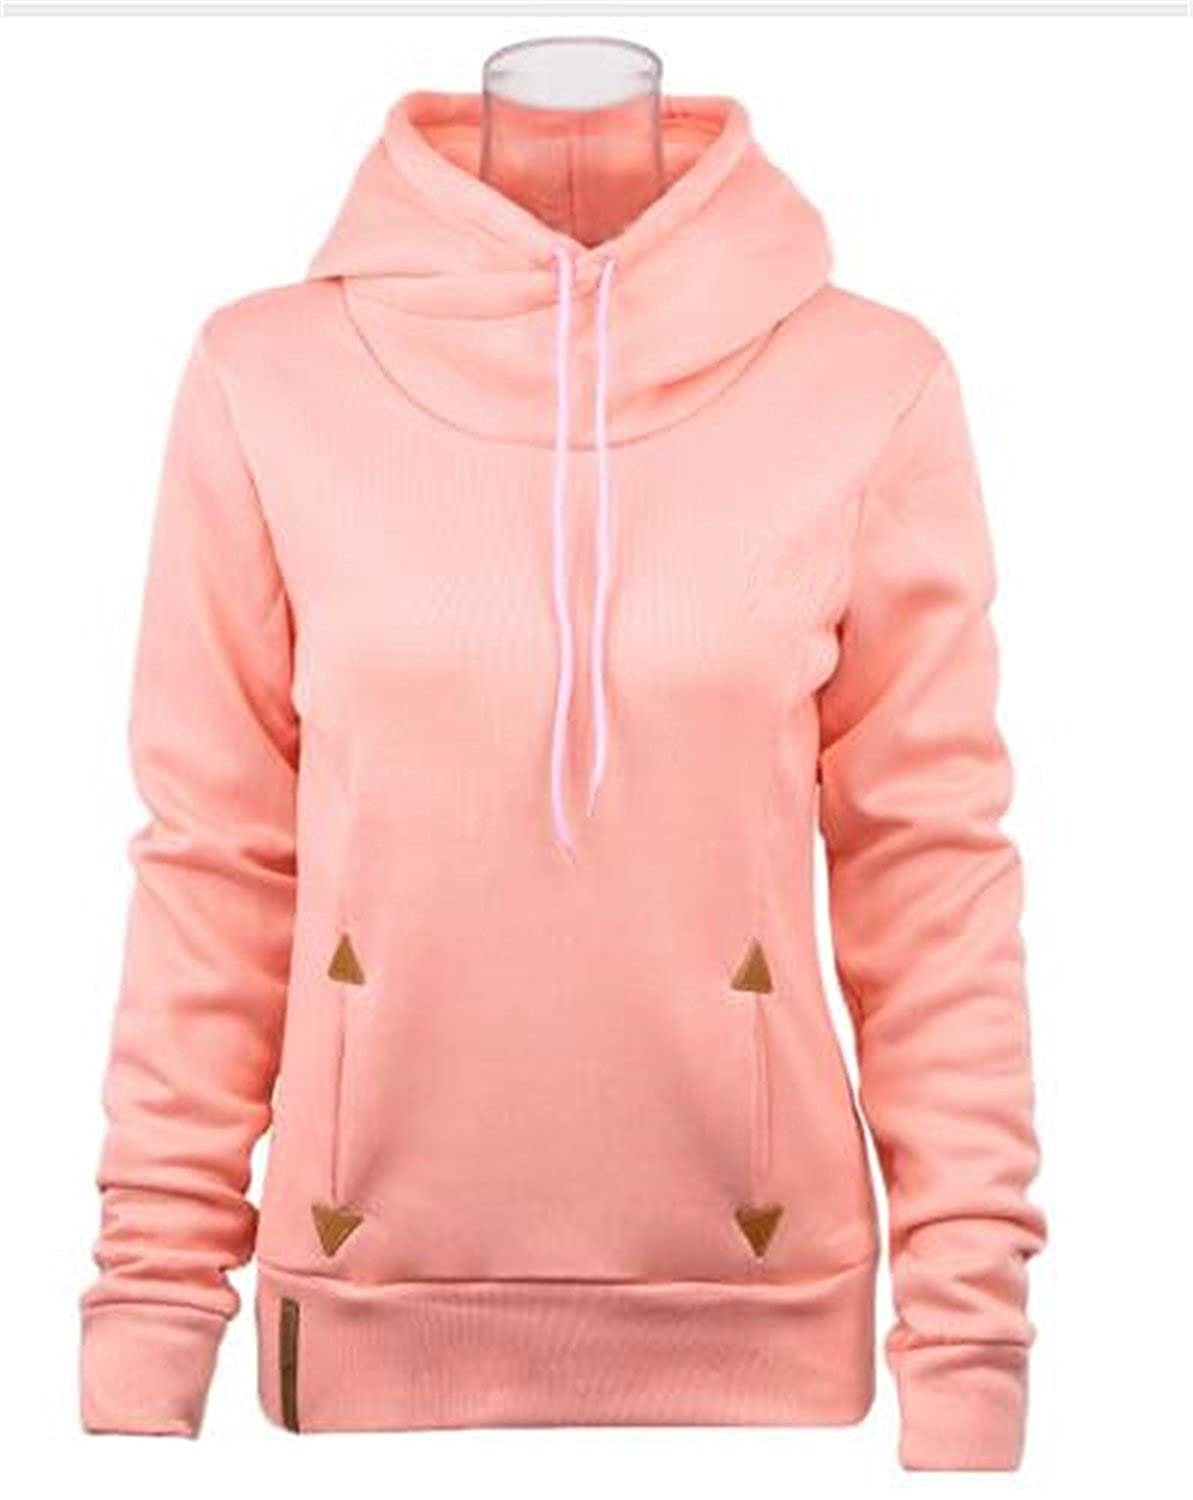 Kebinai Women Hoodies Self-Tie Pockets Pullover Hooded Loose Tops Hoodie For Women Sudaderas Mujer at Amazon Womens Clothing store: